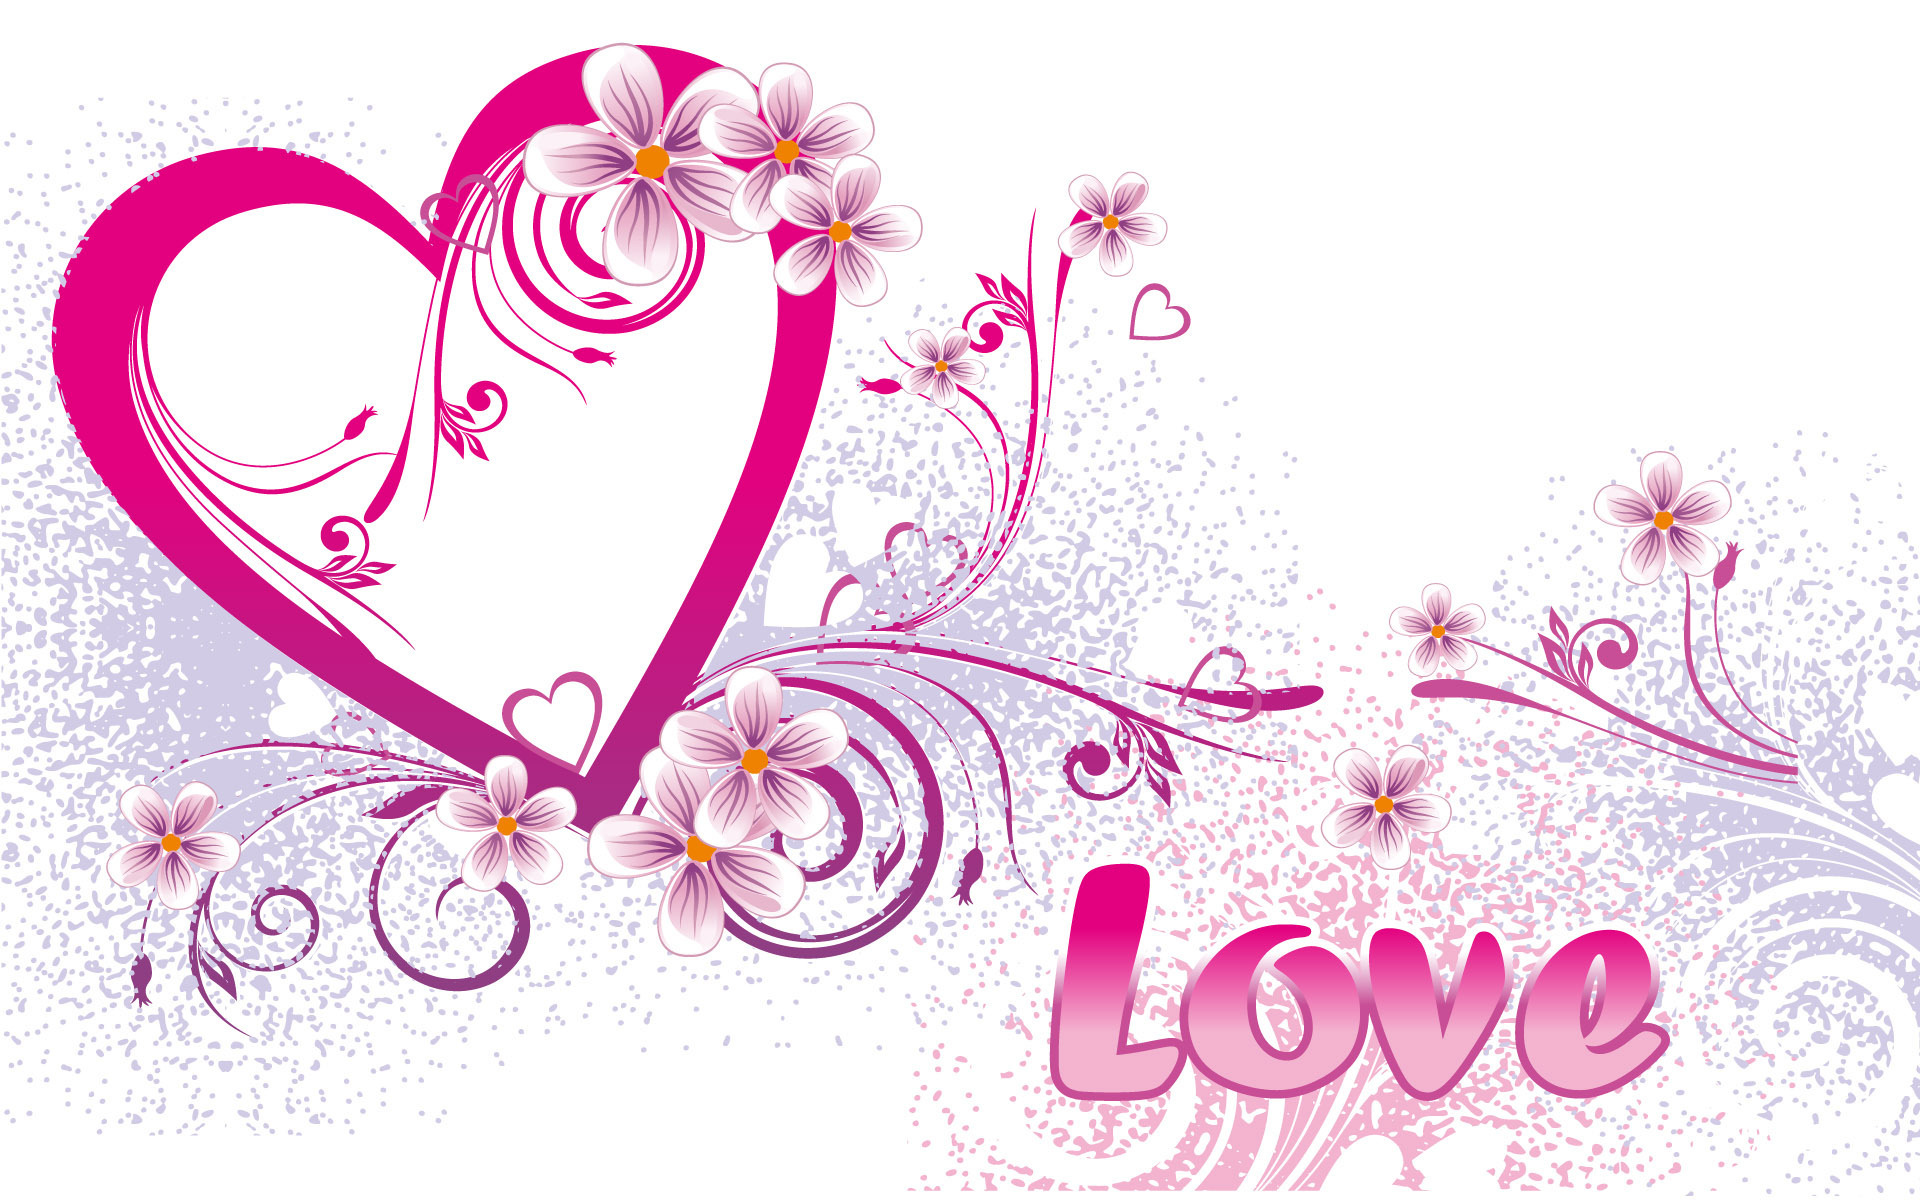 Love Wallpaper Love Wallpaper 4187632 Fanpop